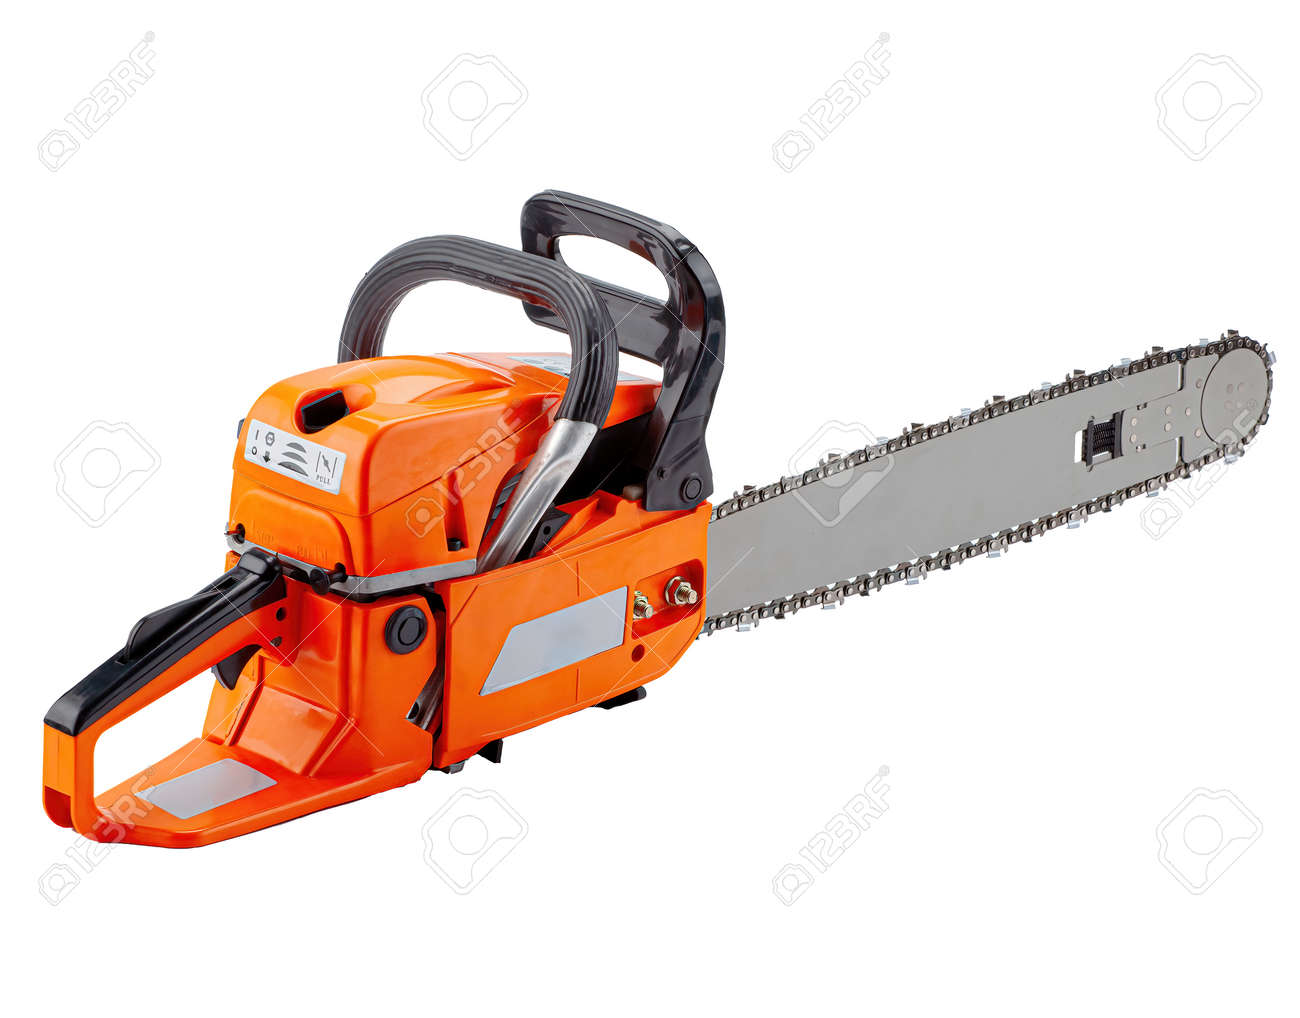 Chainsaw isolated on white background - 169111915